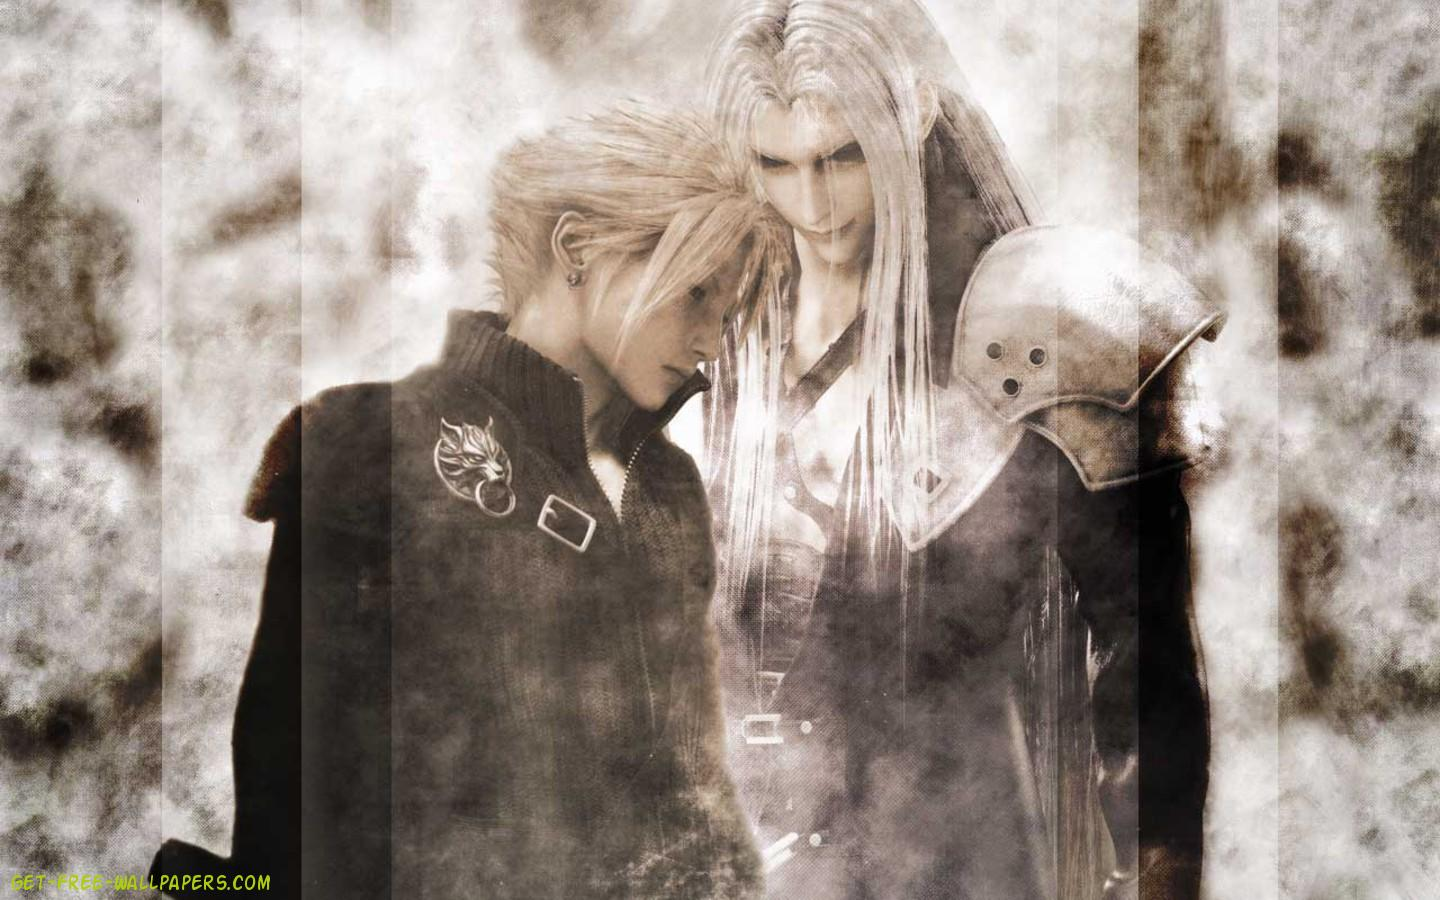 89 final fantasy vii advent children hd wallpapers backgrounds - Download Final Fantasy Vii Advent Children Wallpaper